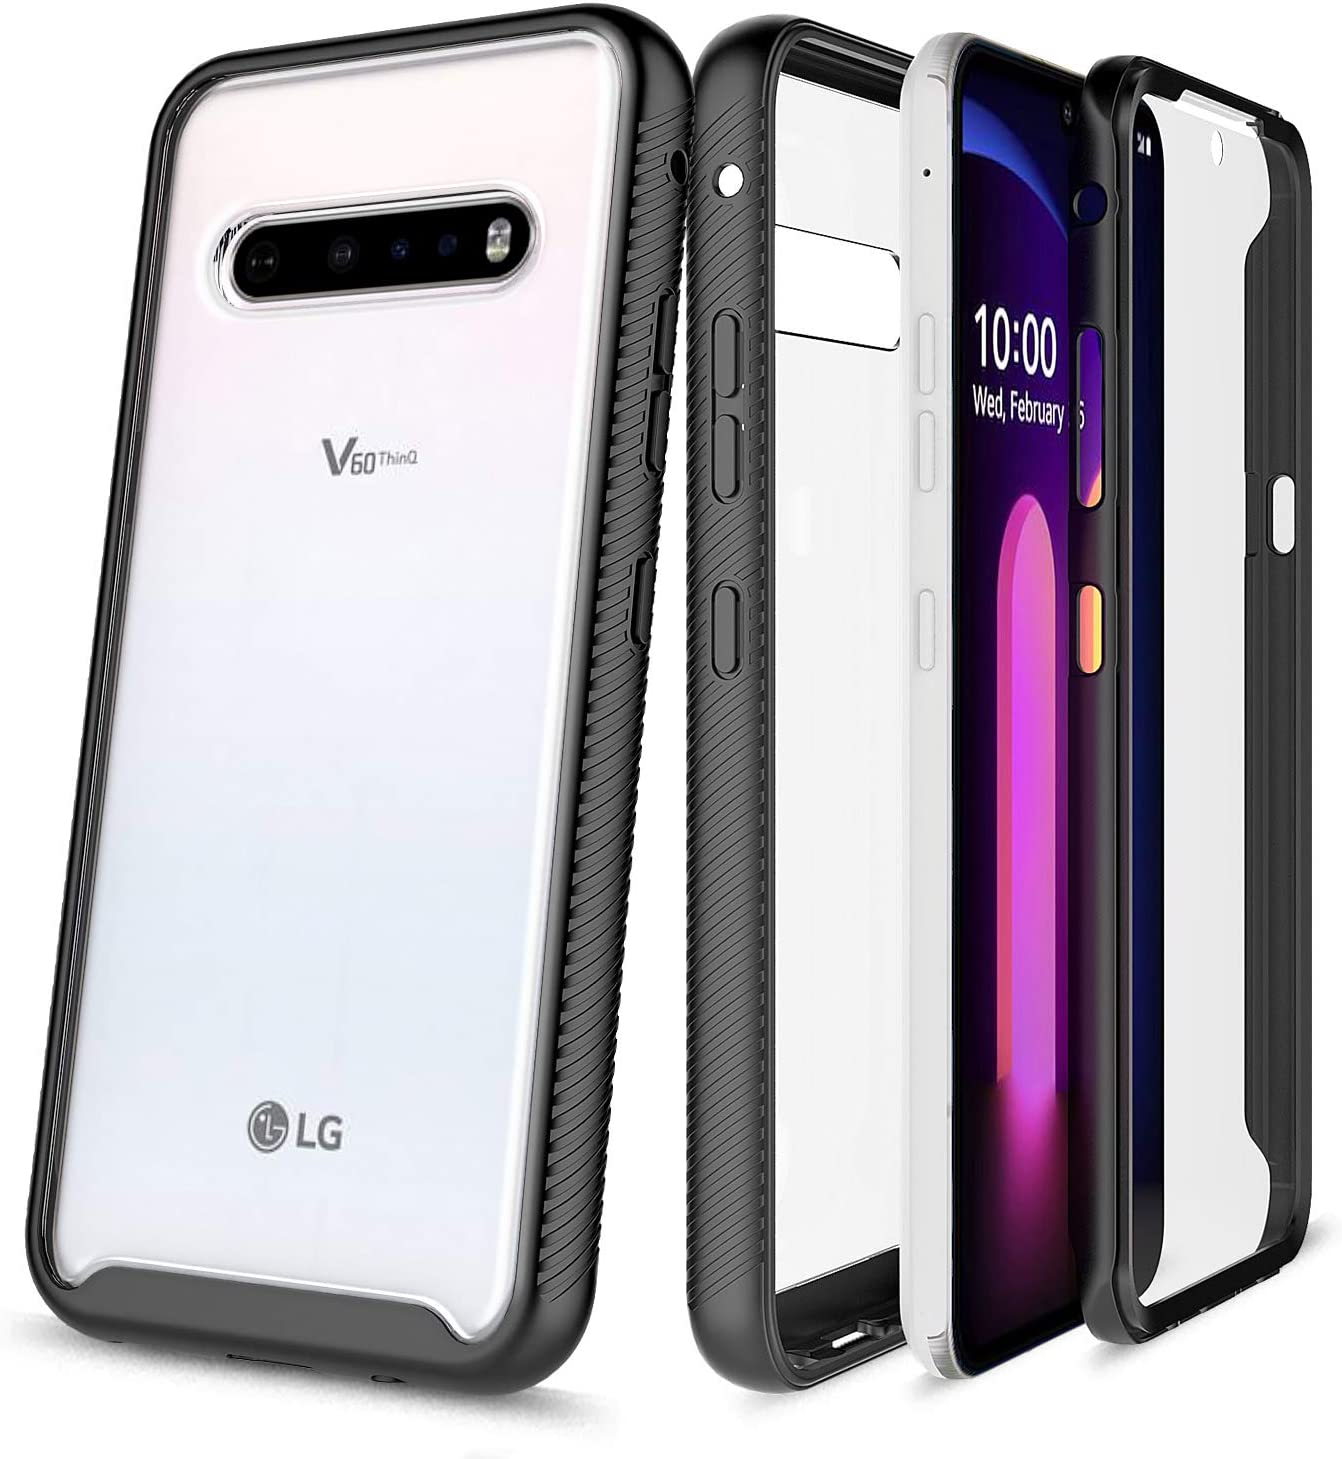 E-Began Phone Case for LG V60 ThinQ, LG V60 ThinQ 5G (2020 Release), Full-Body Protective Rugged Bumper Cover with Built-in Screen Protector, Shockproof Impact Resist Durable Case -Black